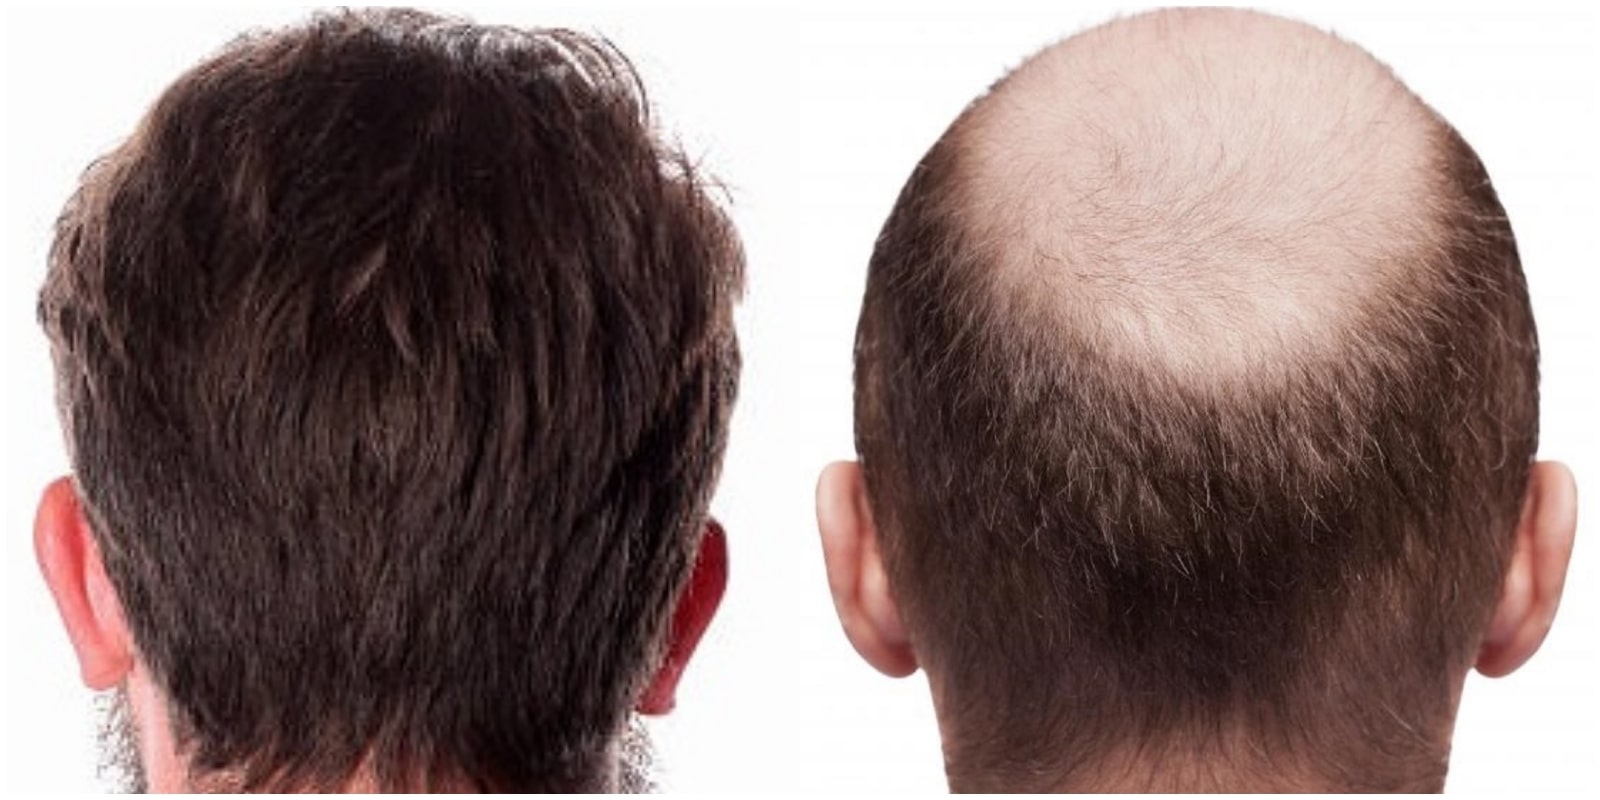 hair transplant treatment in chennai